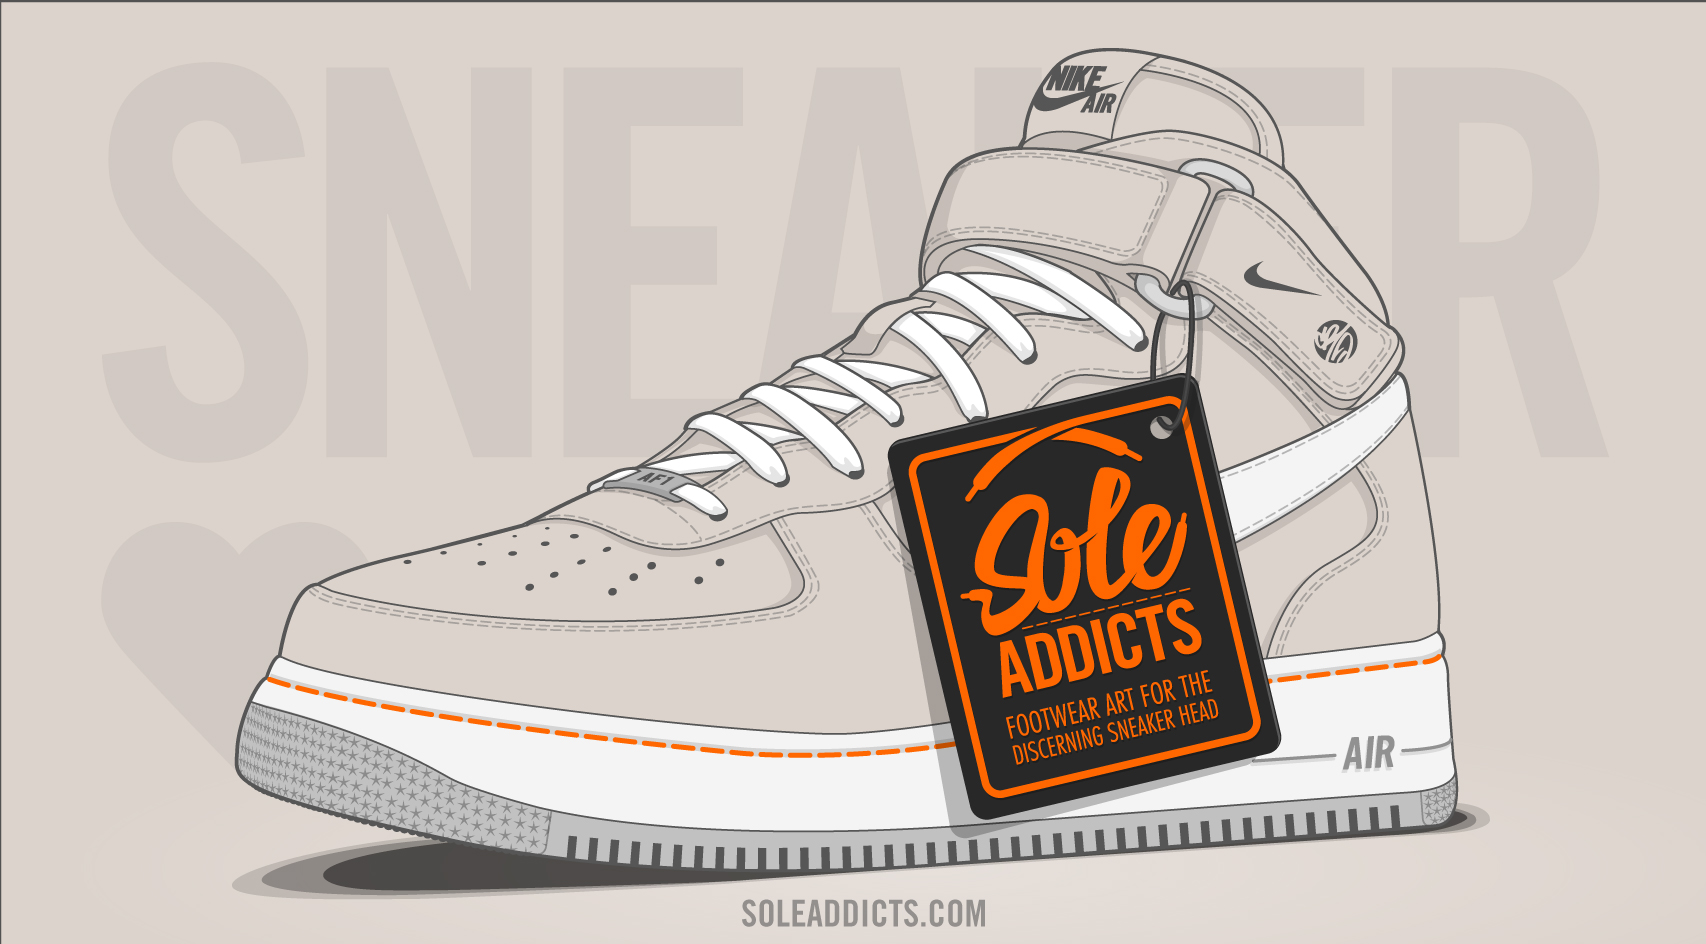 Sole Addicts Sneaker Art - coming soon!